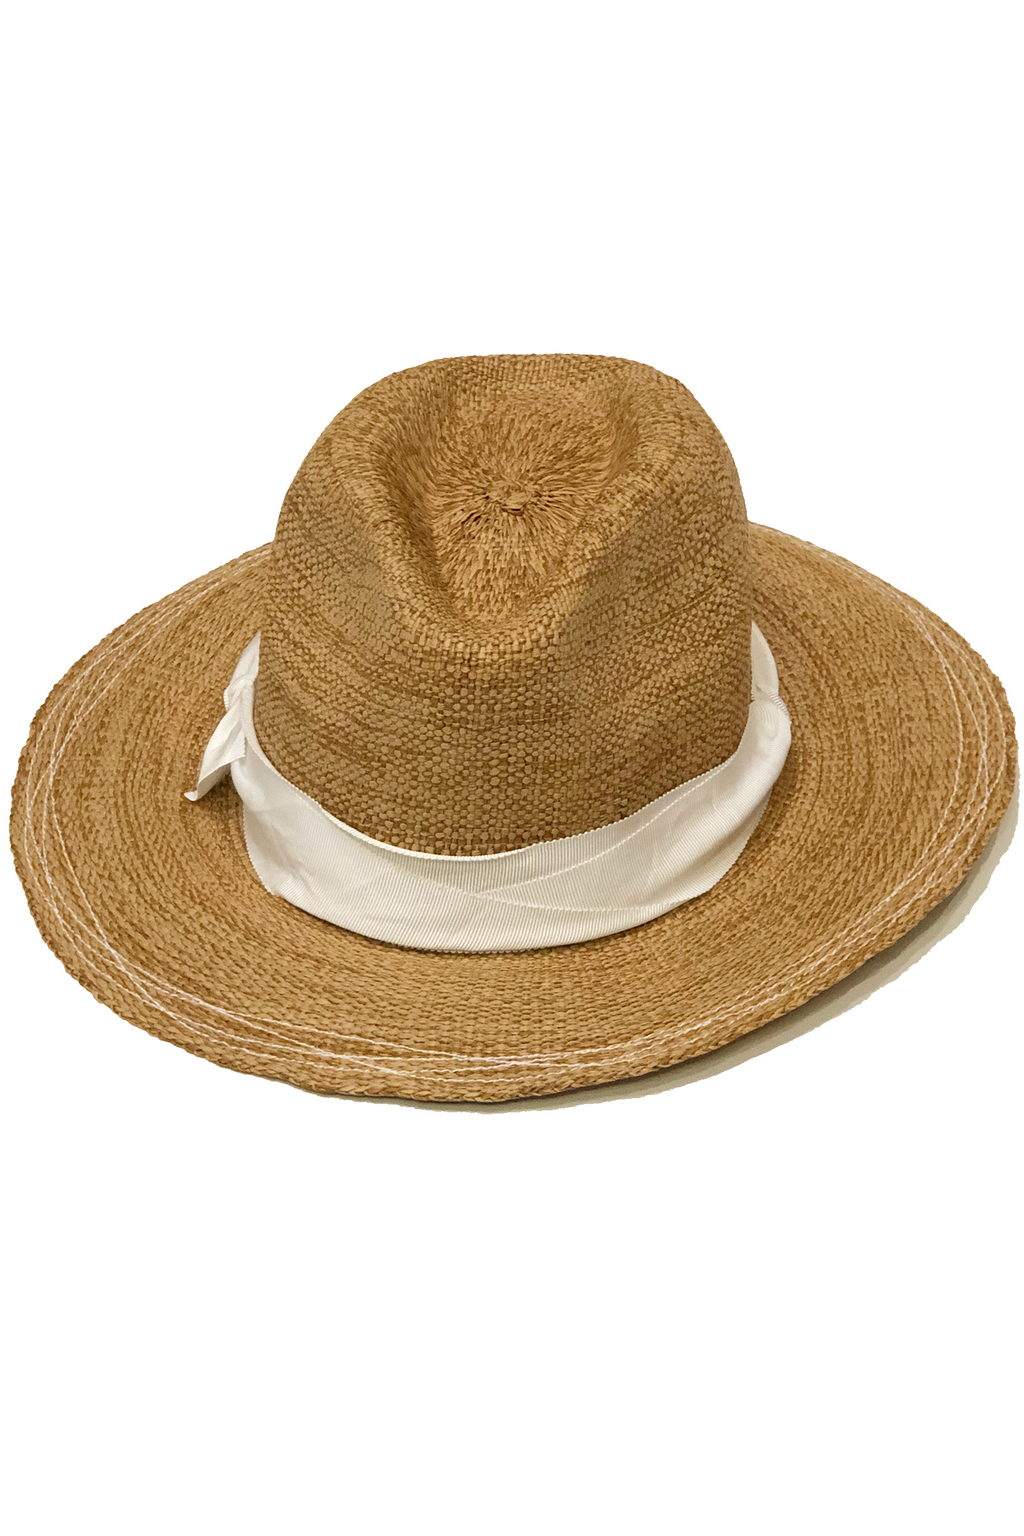 Lola Ehrlich Risa and Shine Tobacco in White Straw Hat